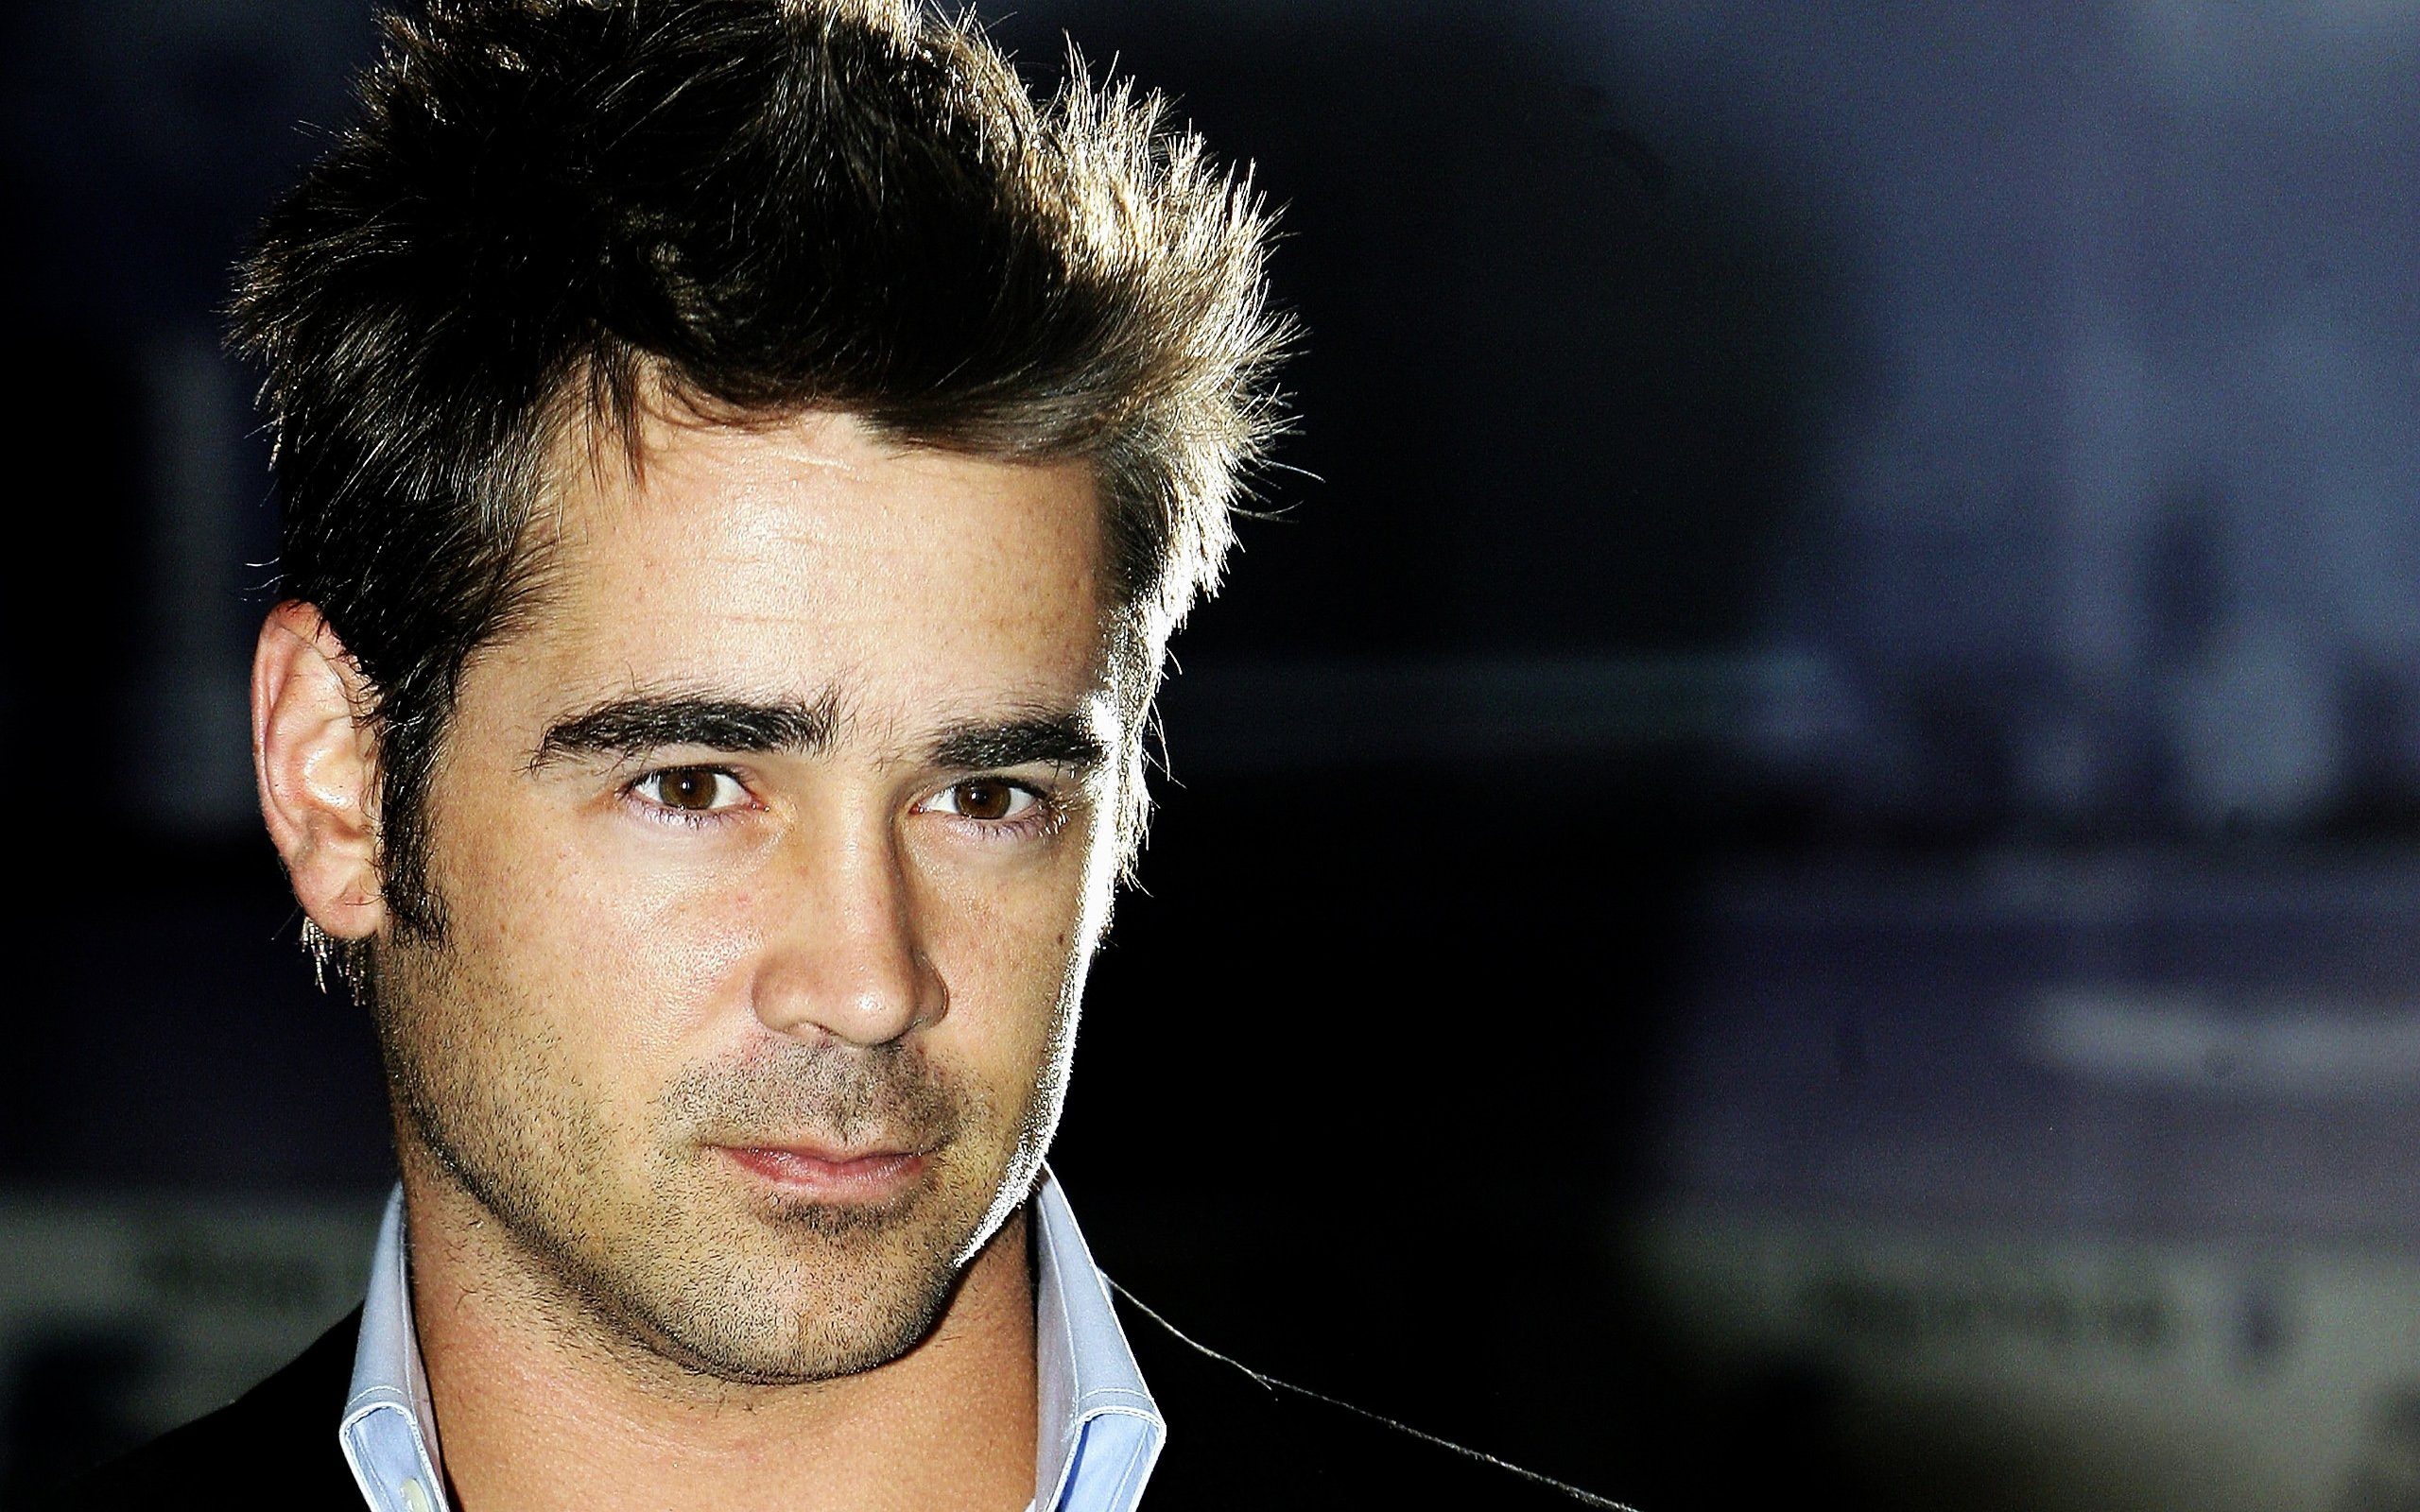 Colin Farrell Wallpapers High Resolution and Quality Download 2560x1600